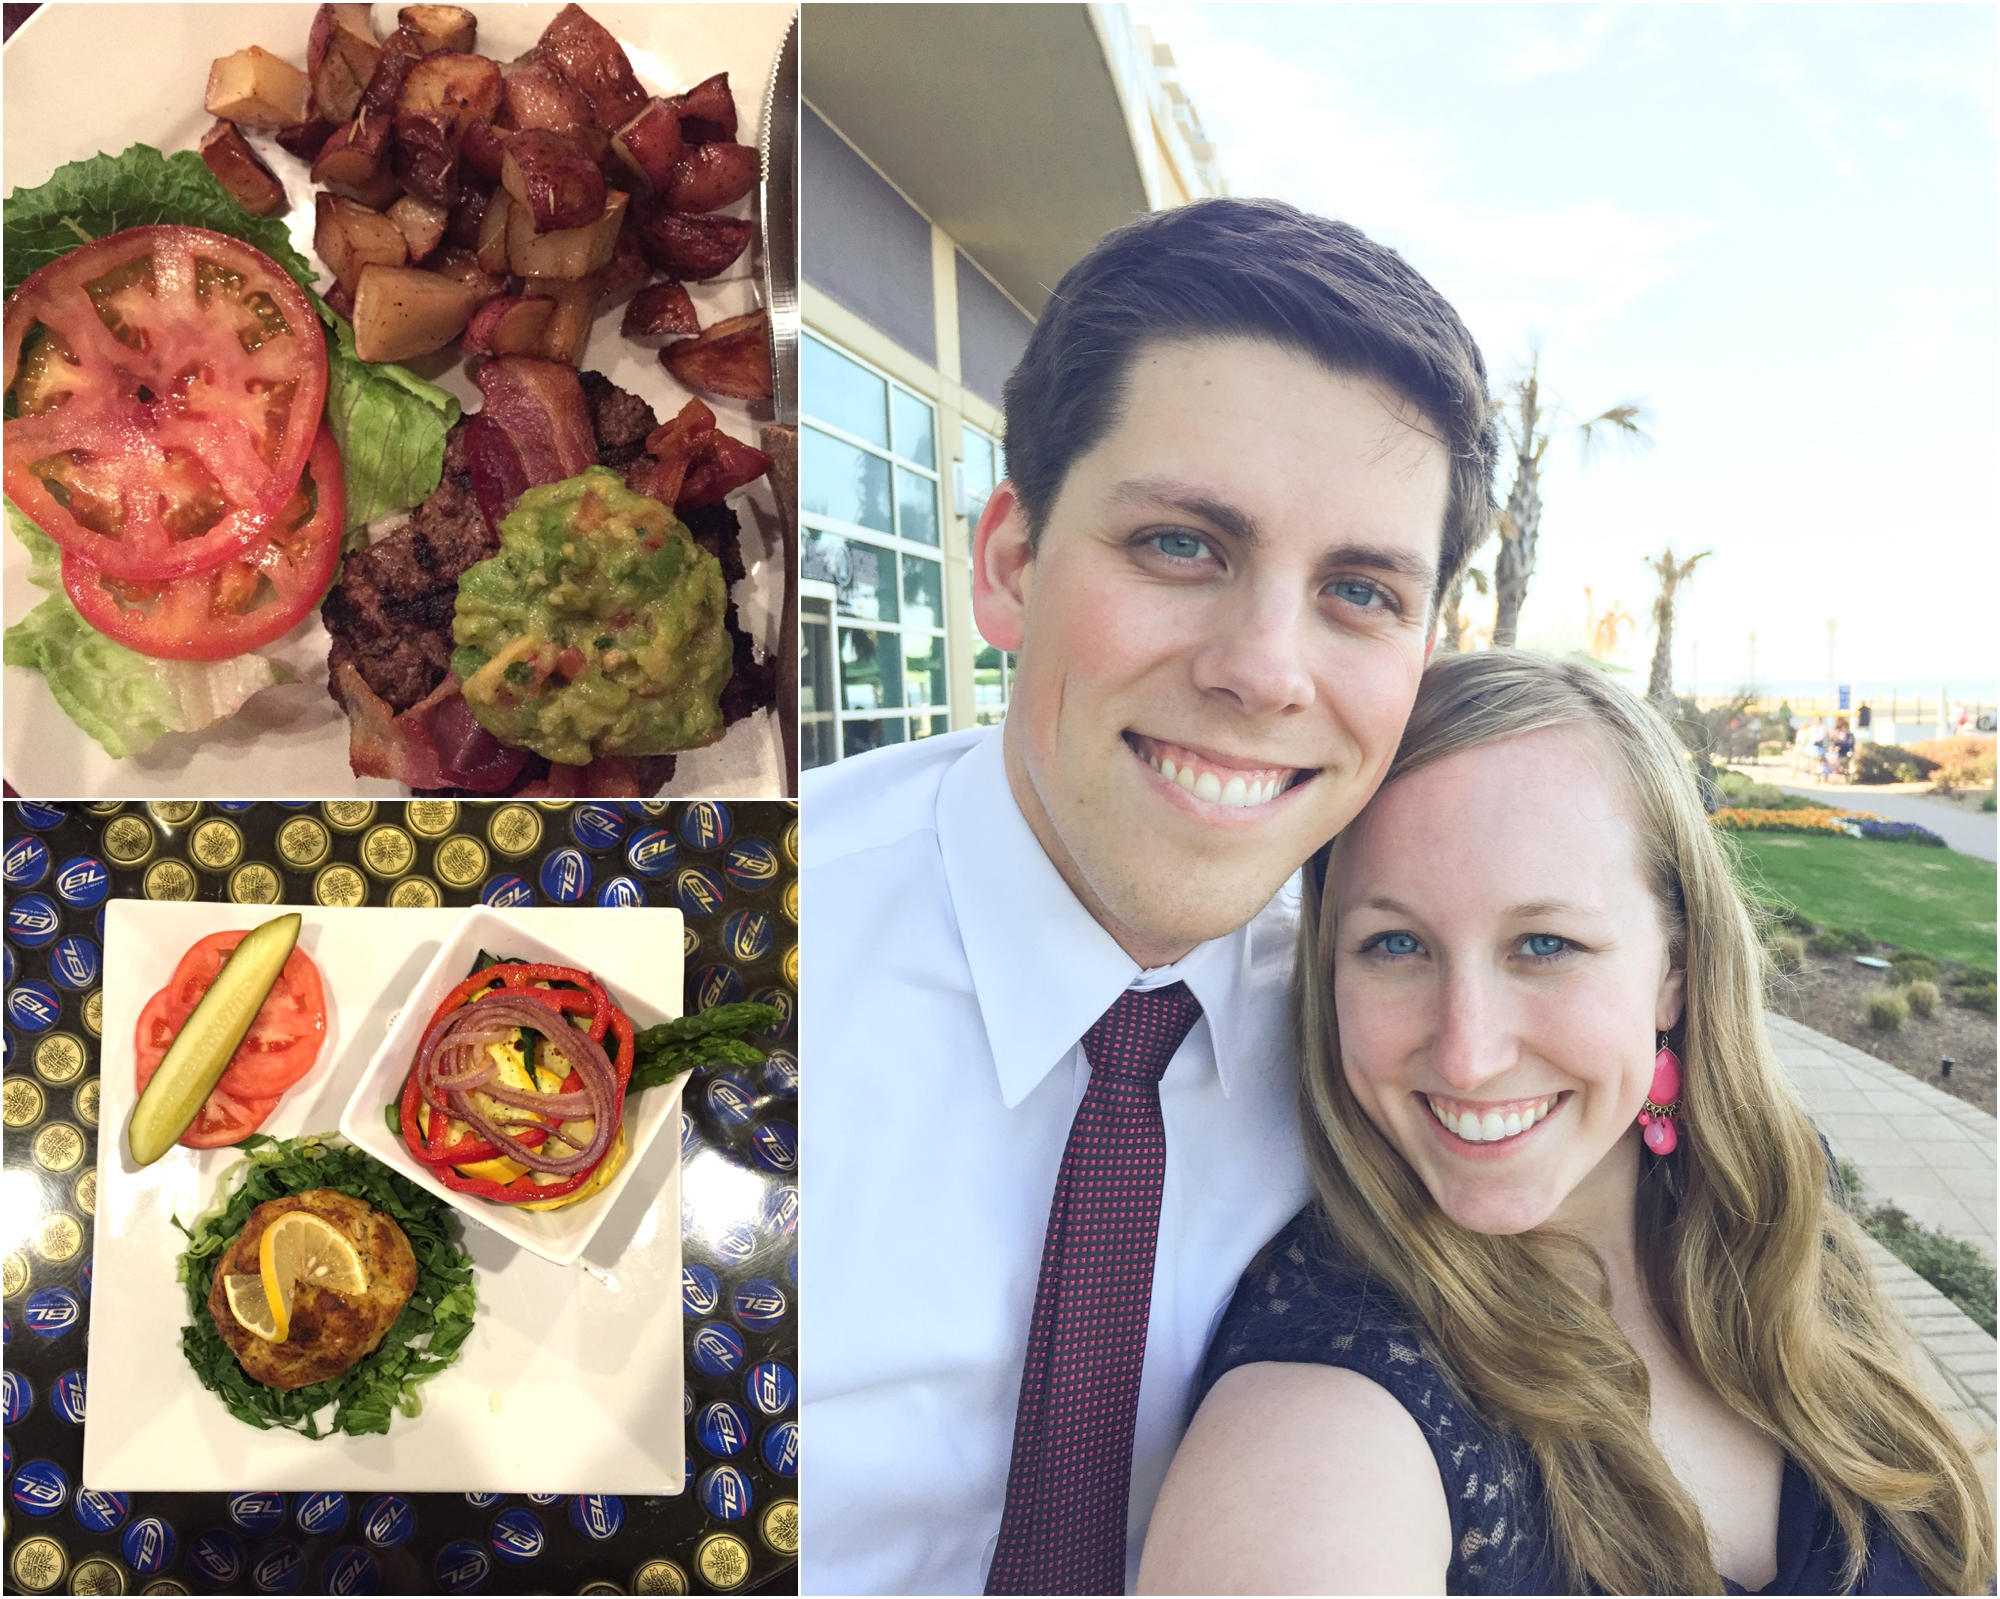 Week 3 we shot a wedding in VA Beach and I planned ahead! I brought a cooler with hard boiled eggs, water bottles, homemade salad dressing, fruit, and veggies. When we went out to eat, I ordered a burger with no bun or cheese and it was delicious!